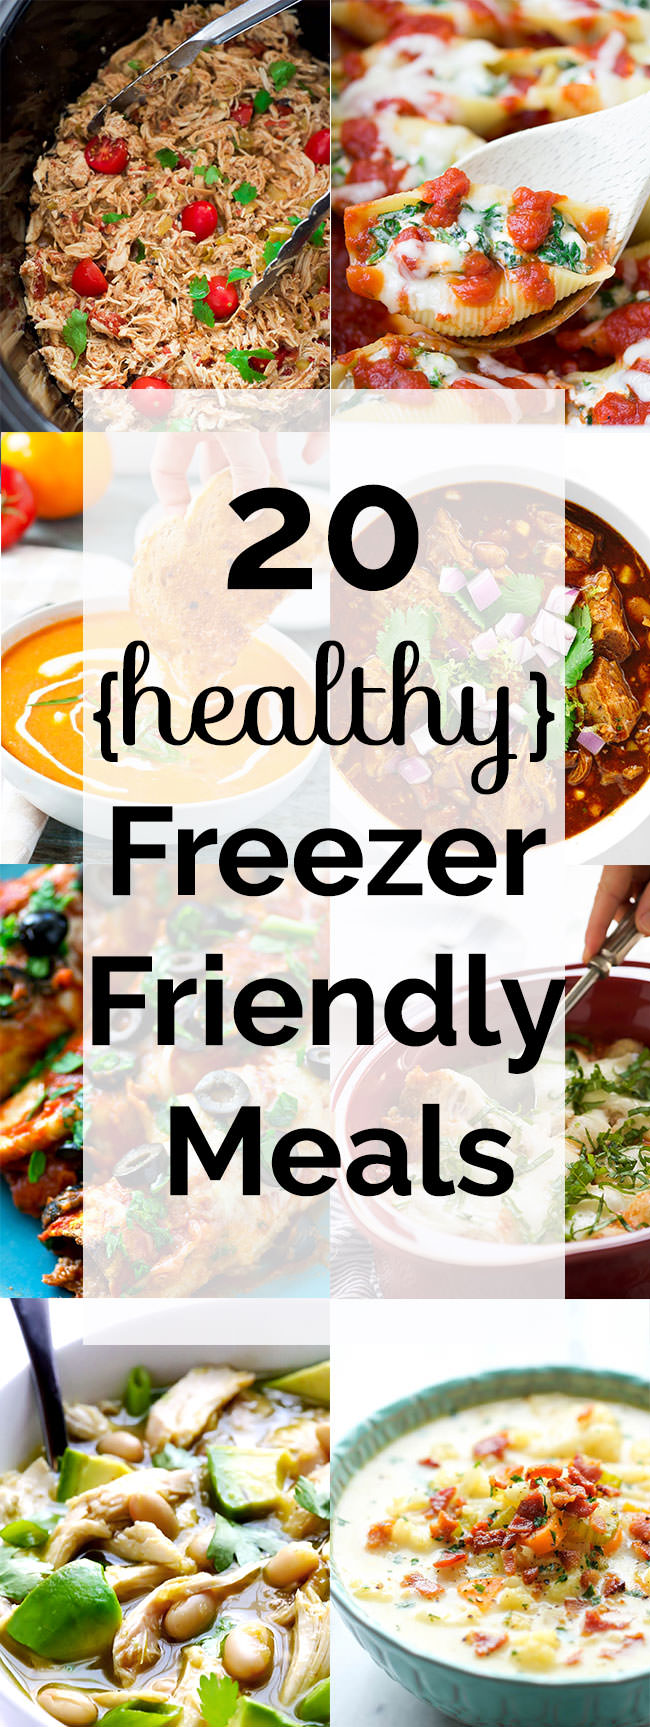 Meals from casseroles to crock pot that are perfect for busy families